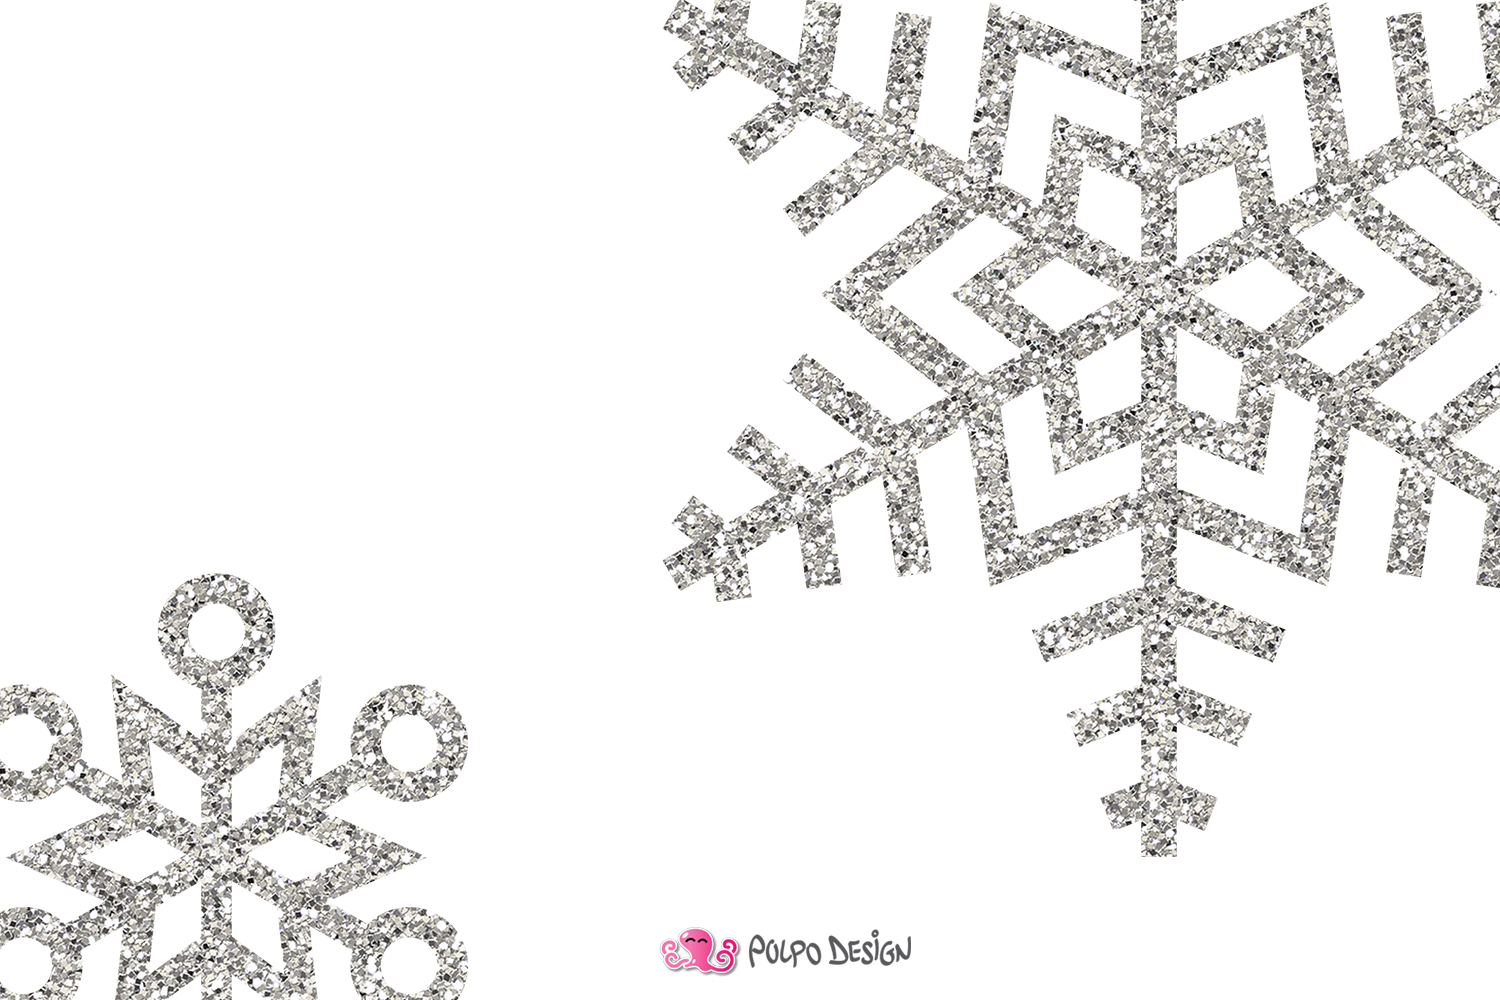 Silver glitter snowflake clipart svg freeuse stock Silver Glitter Snowflakes clipart svg freeuse stock